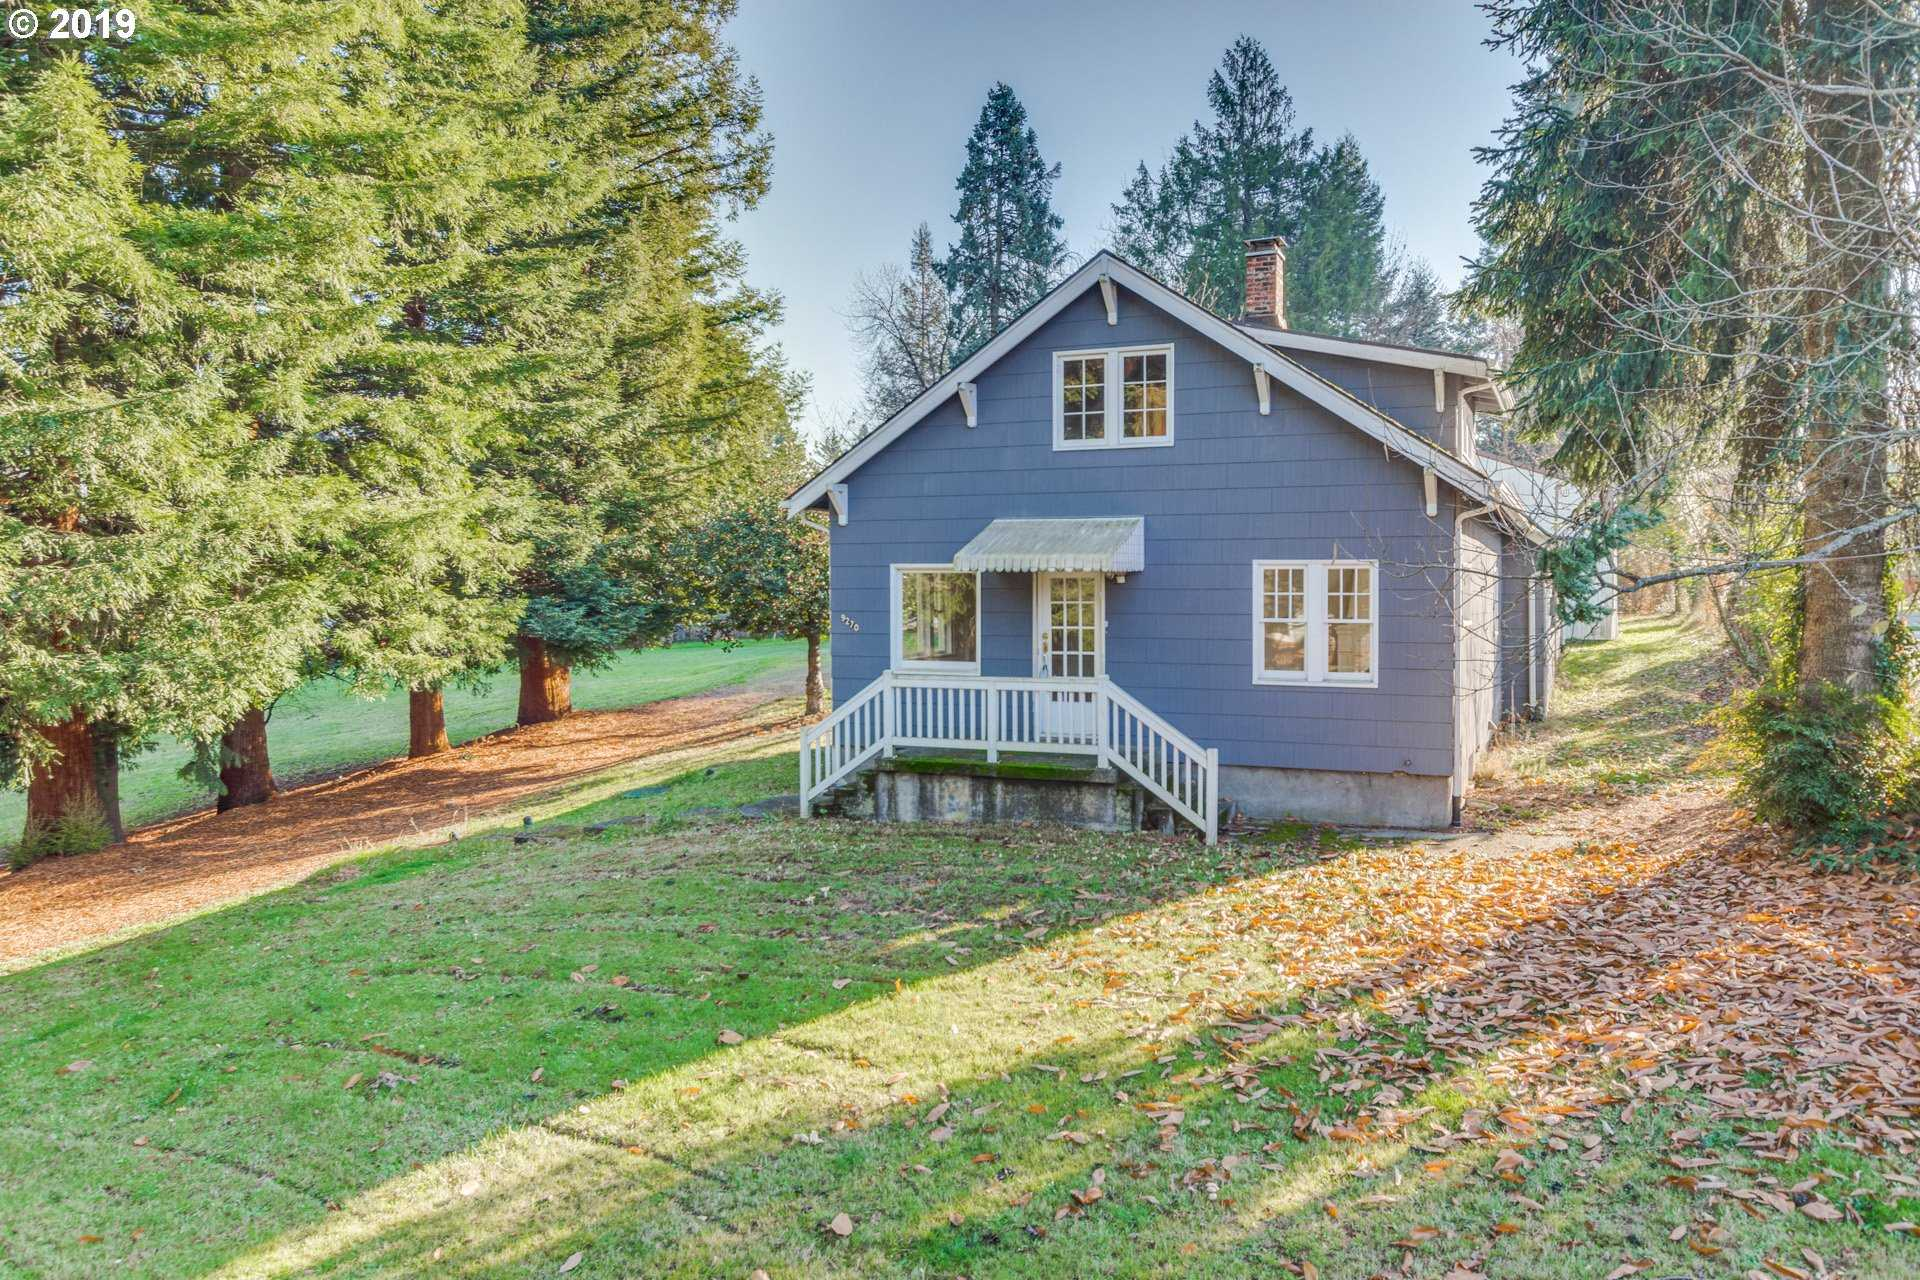 $779,100 - 3Br/2Ba -  for Sale in Edgewood, Tigard